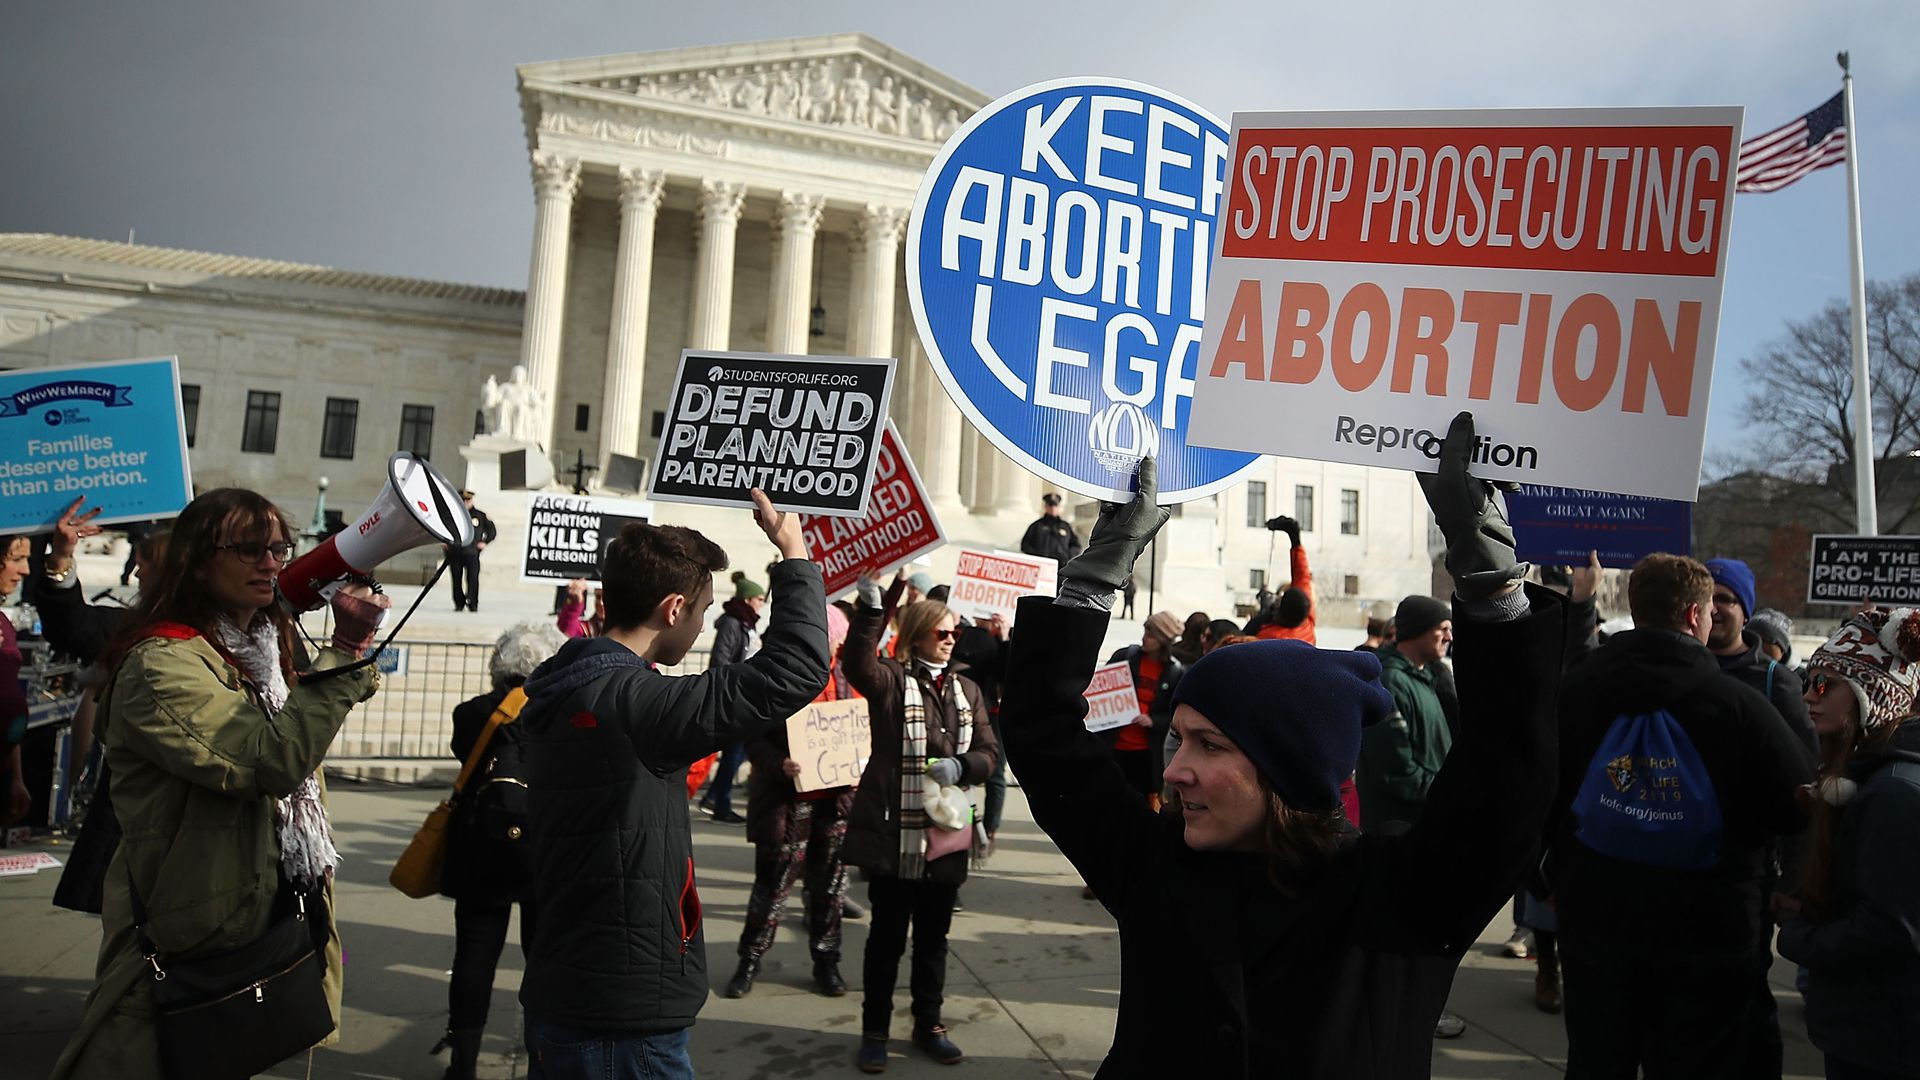 Protesters on both sides of the abortion issue demonstrating outside the U.S. Supreme Court in January.